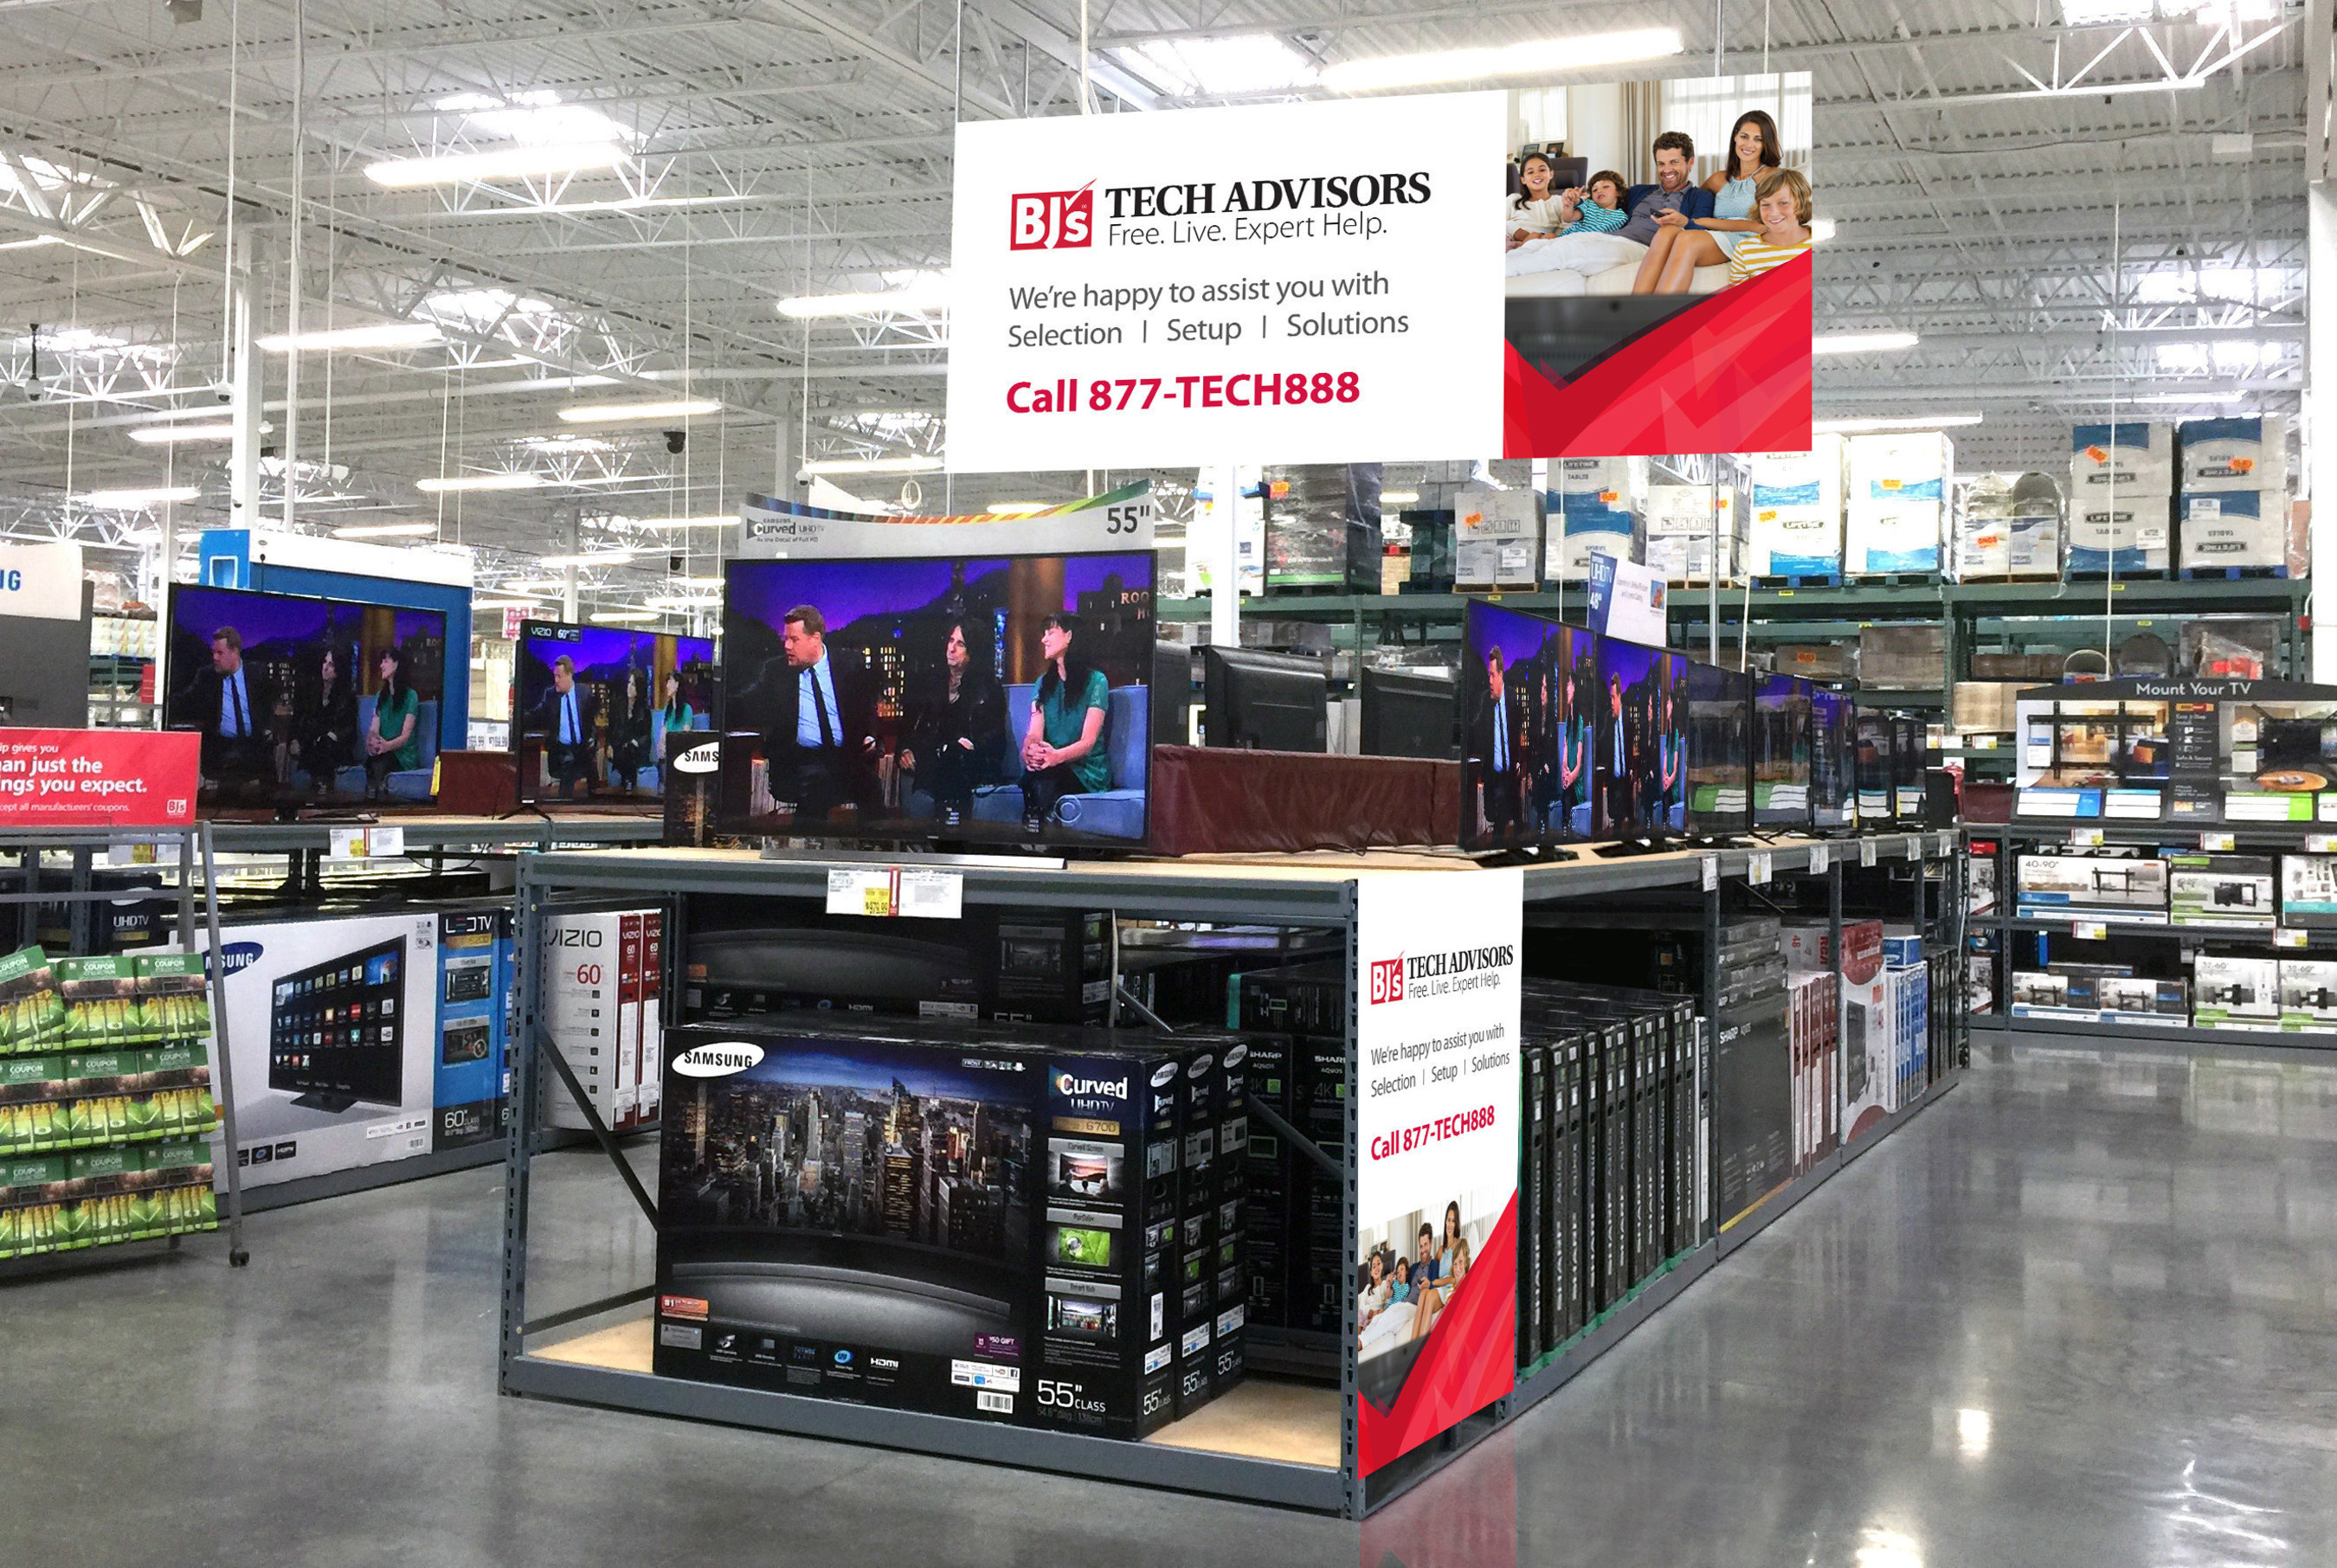 BJ's Wholesale Club Members Get Free Technical Help with New Tech Advisors Service